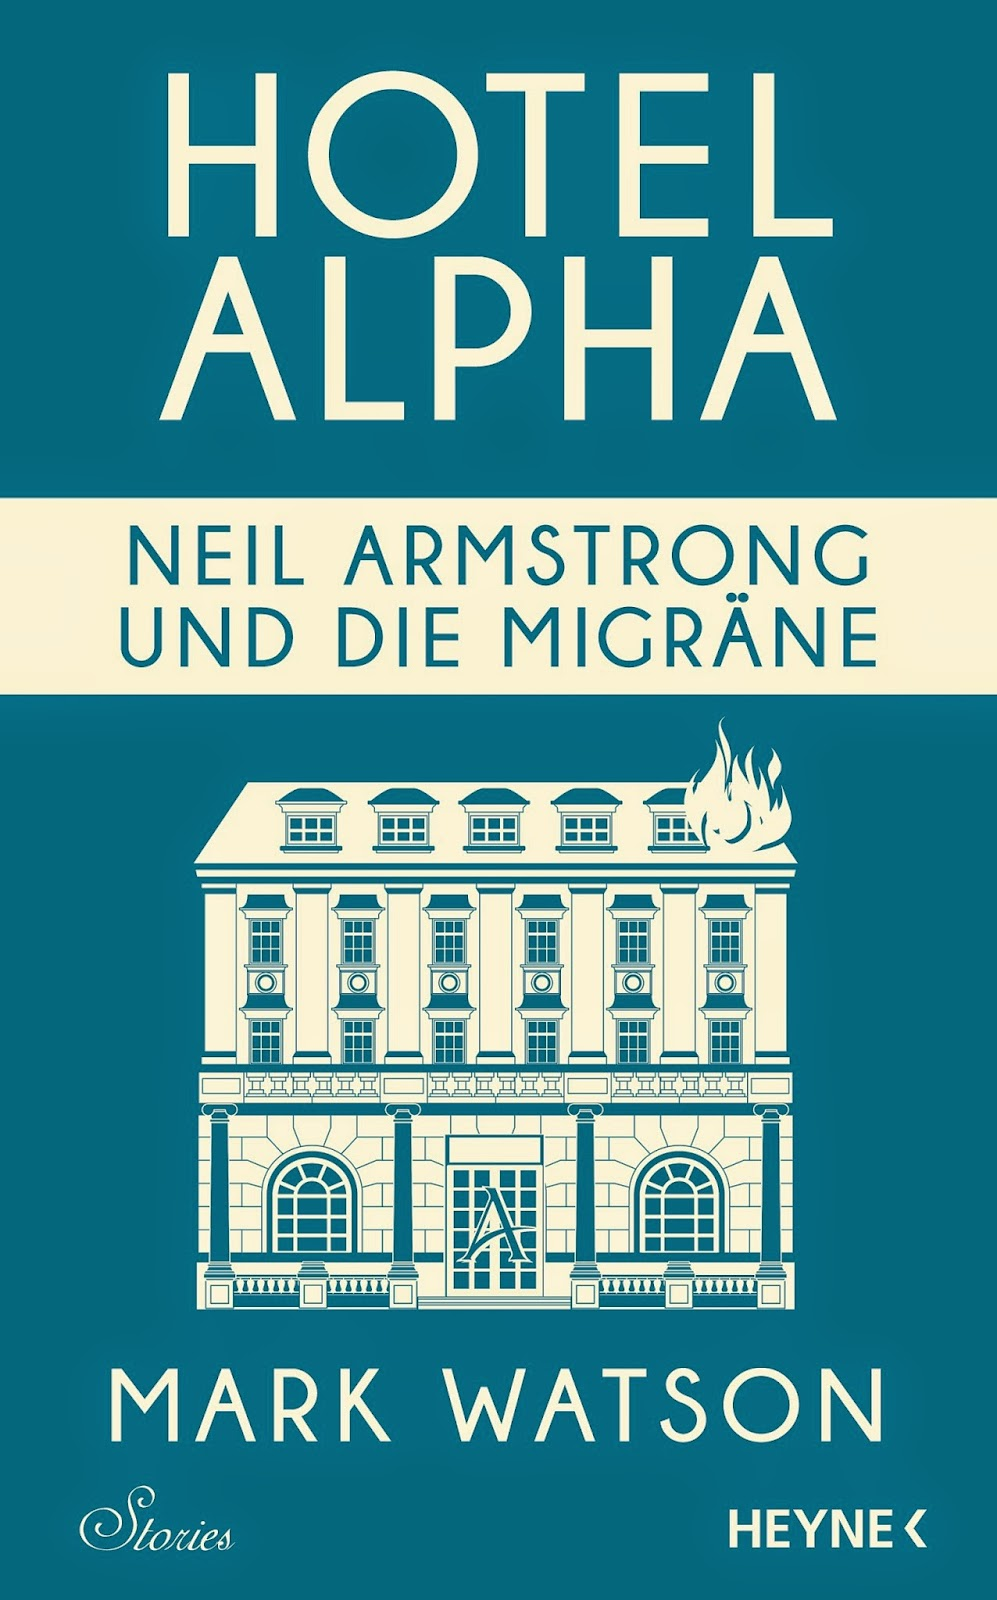 http://www.randomhouse.de/ebook/Neil-Armstrong-und-die-Migraene-Hotel-Alpha-Stories/Mark-Watson/e489898.rhd